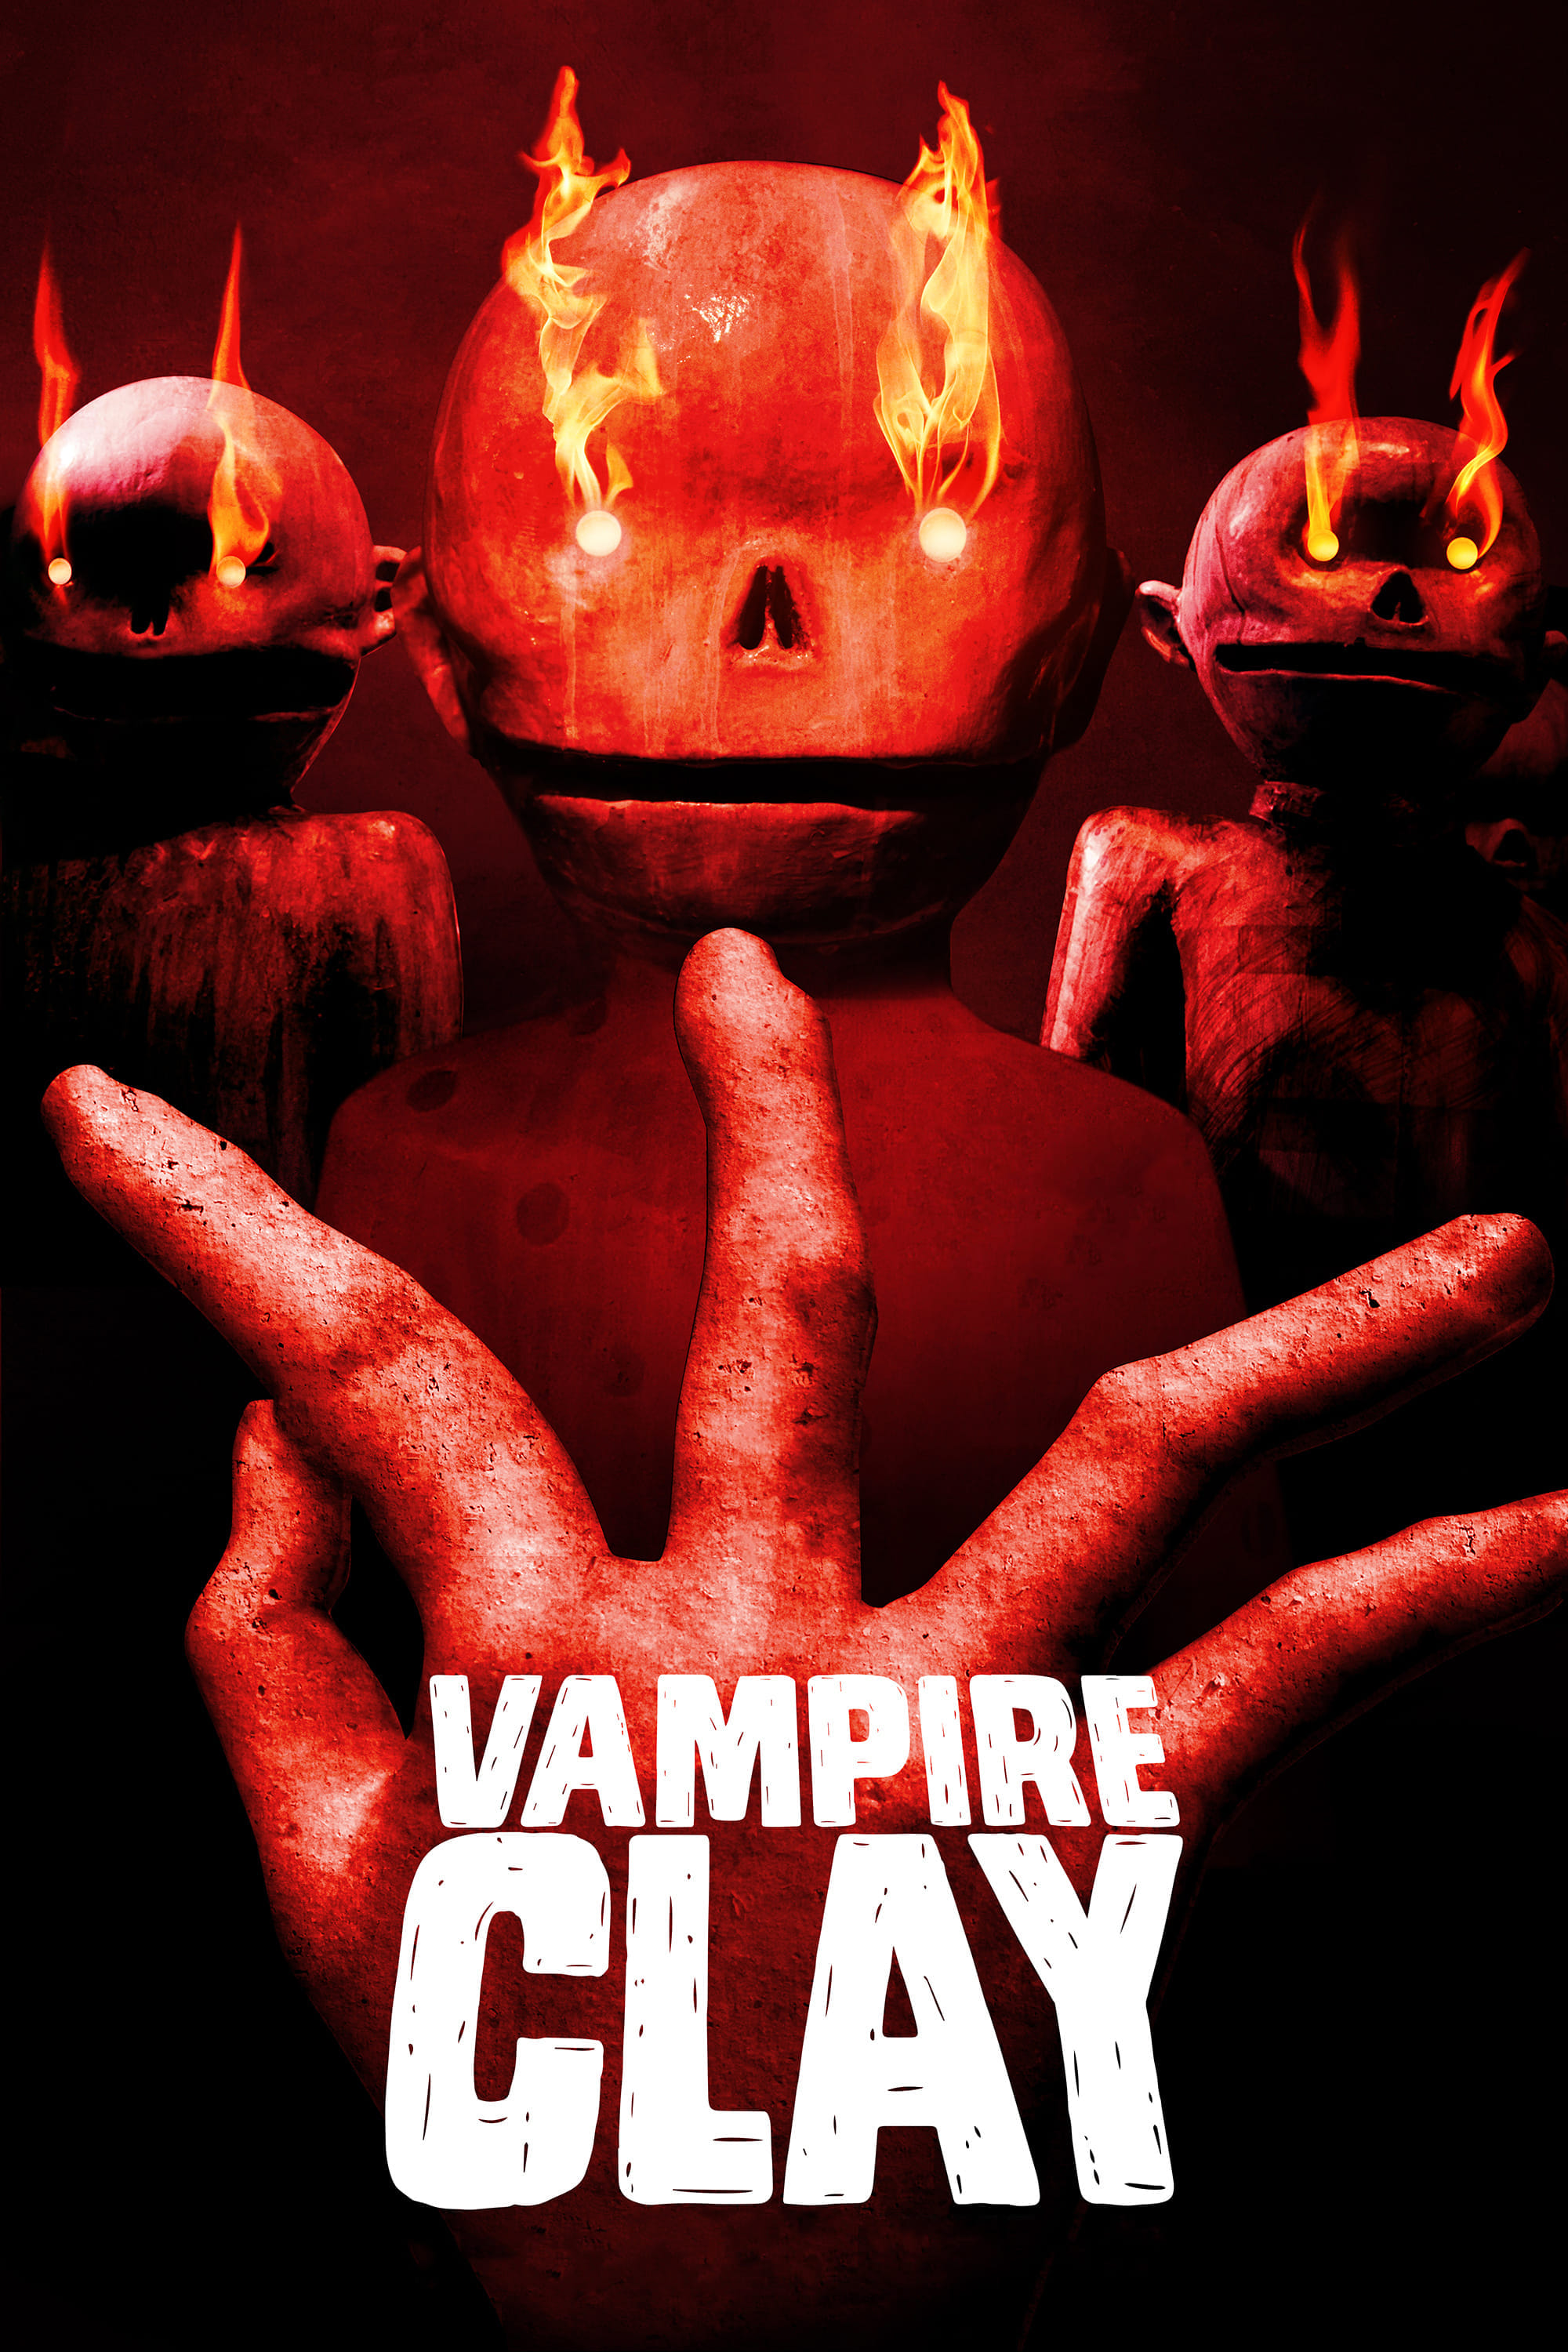 image for Vampire Clay